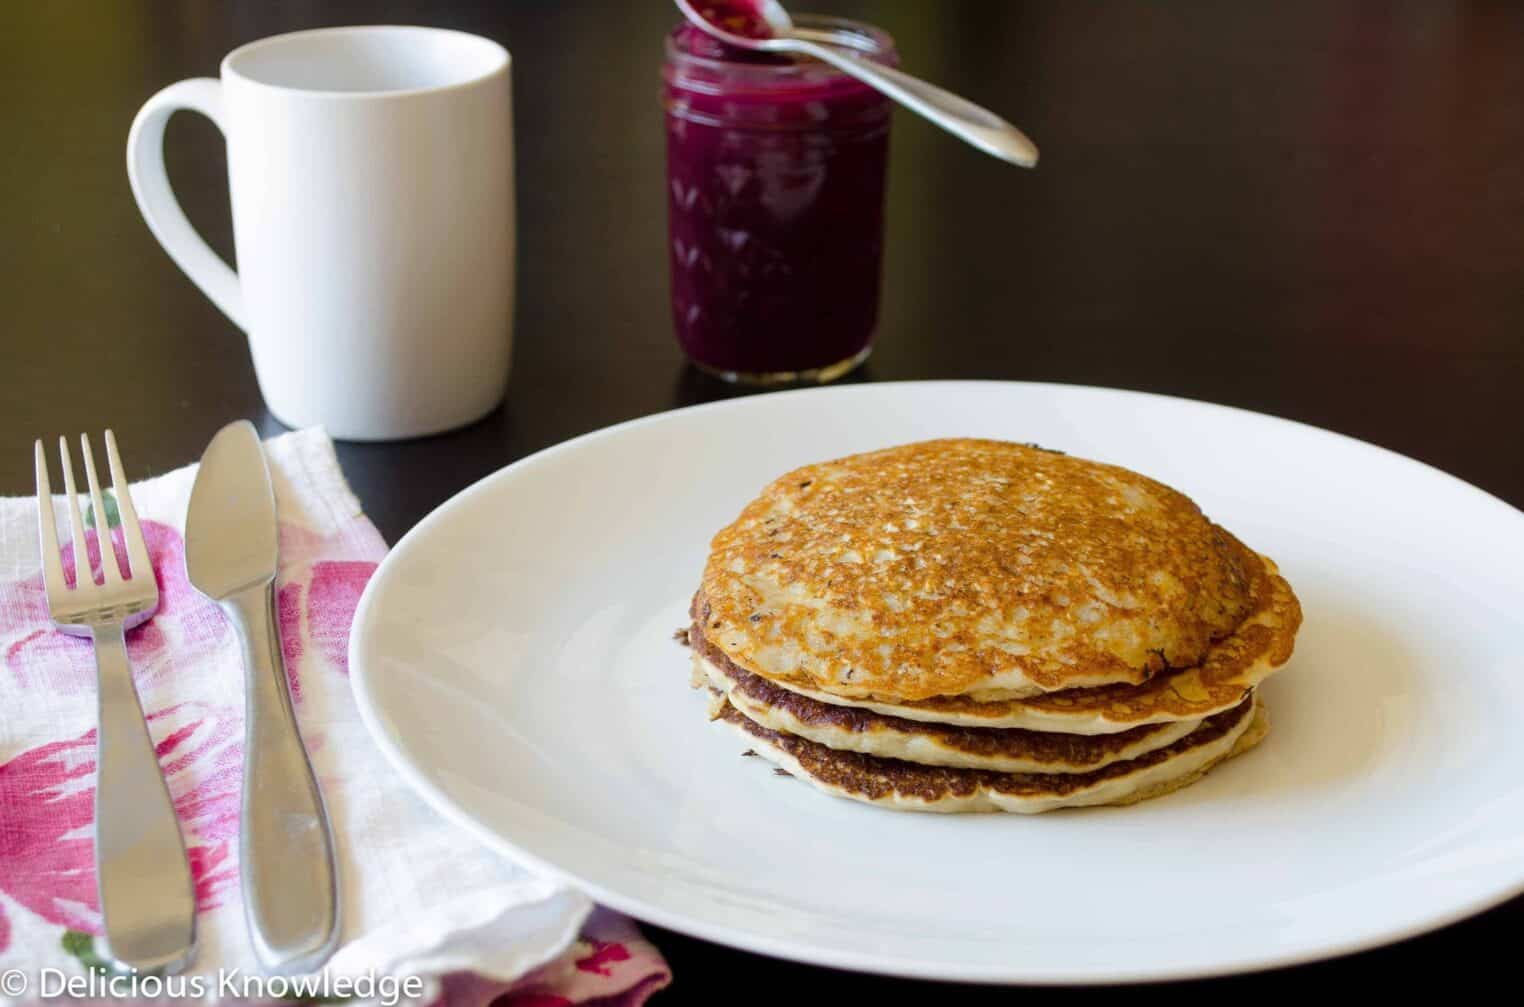 Oatmeal Pancakes with fresh blueberry glaze! Healthy, vegan, and perfect for a lazy brunch or weekday breakfast.